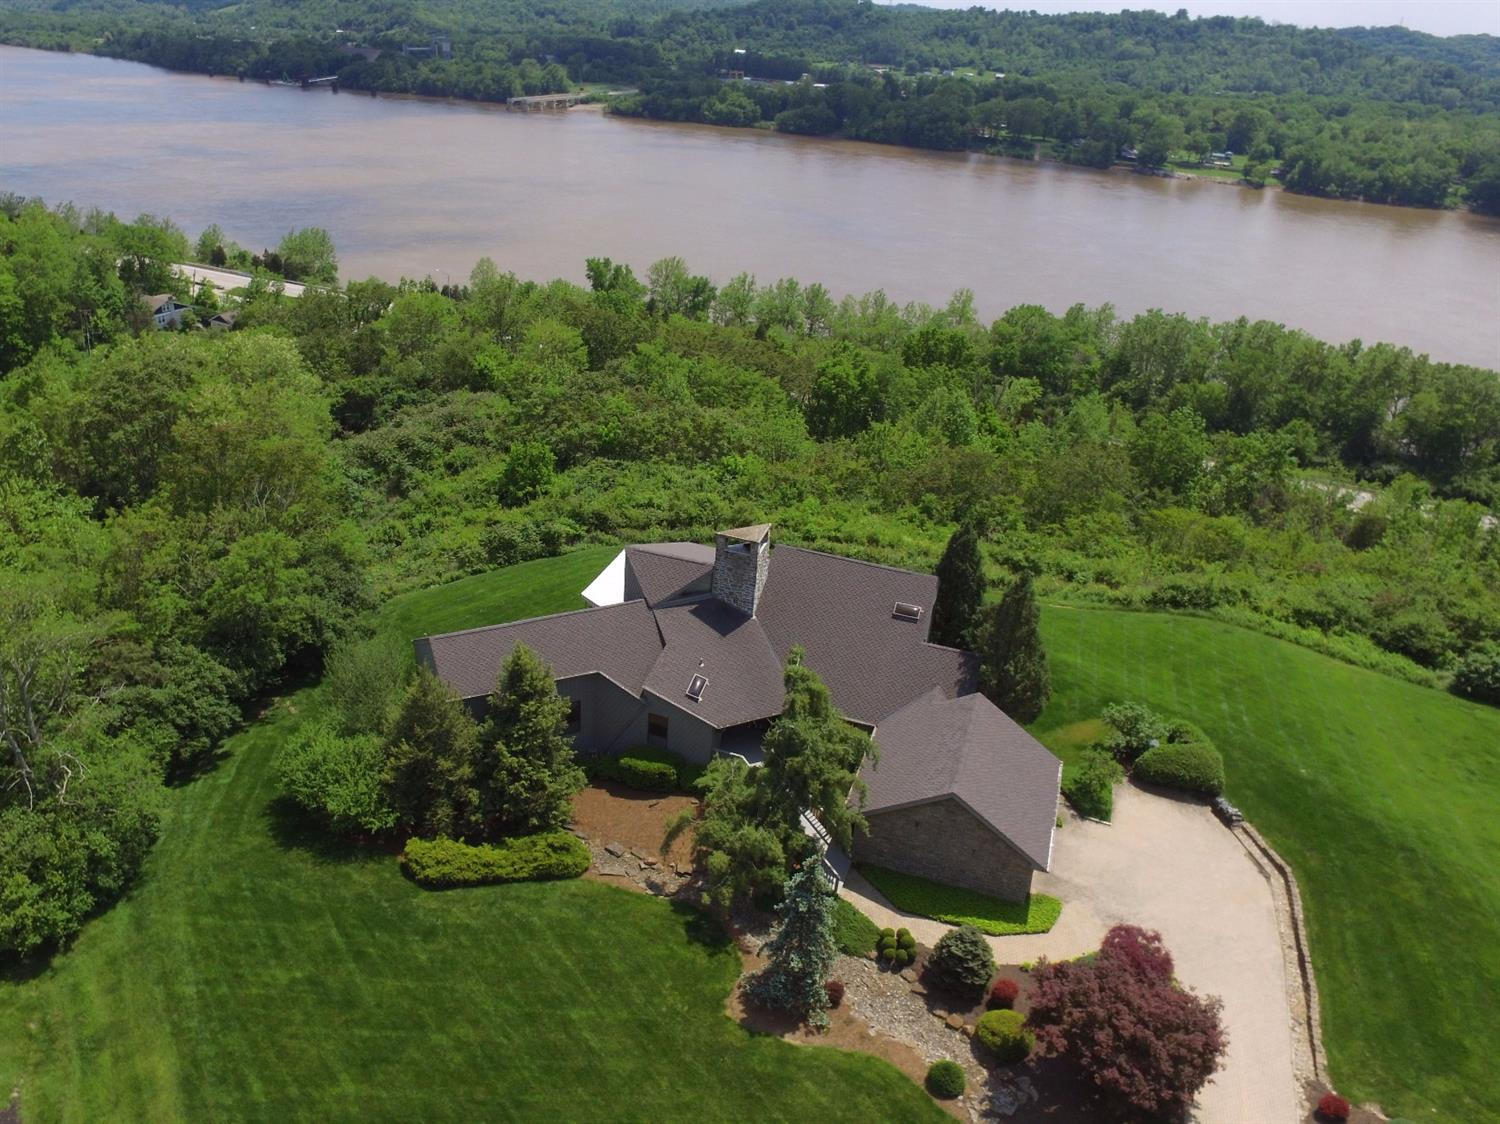 Panoramic river views from this breathtaking transitional home on amazingly private lawn - stunning stone fireplace - soaring ceilings - first floor master suite -  finished lower level - approx 6,000 + sf on 3 levels - a rare opportunity!